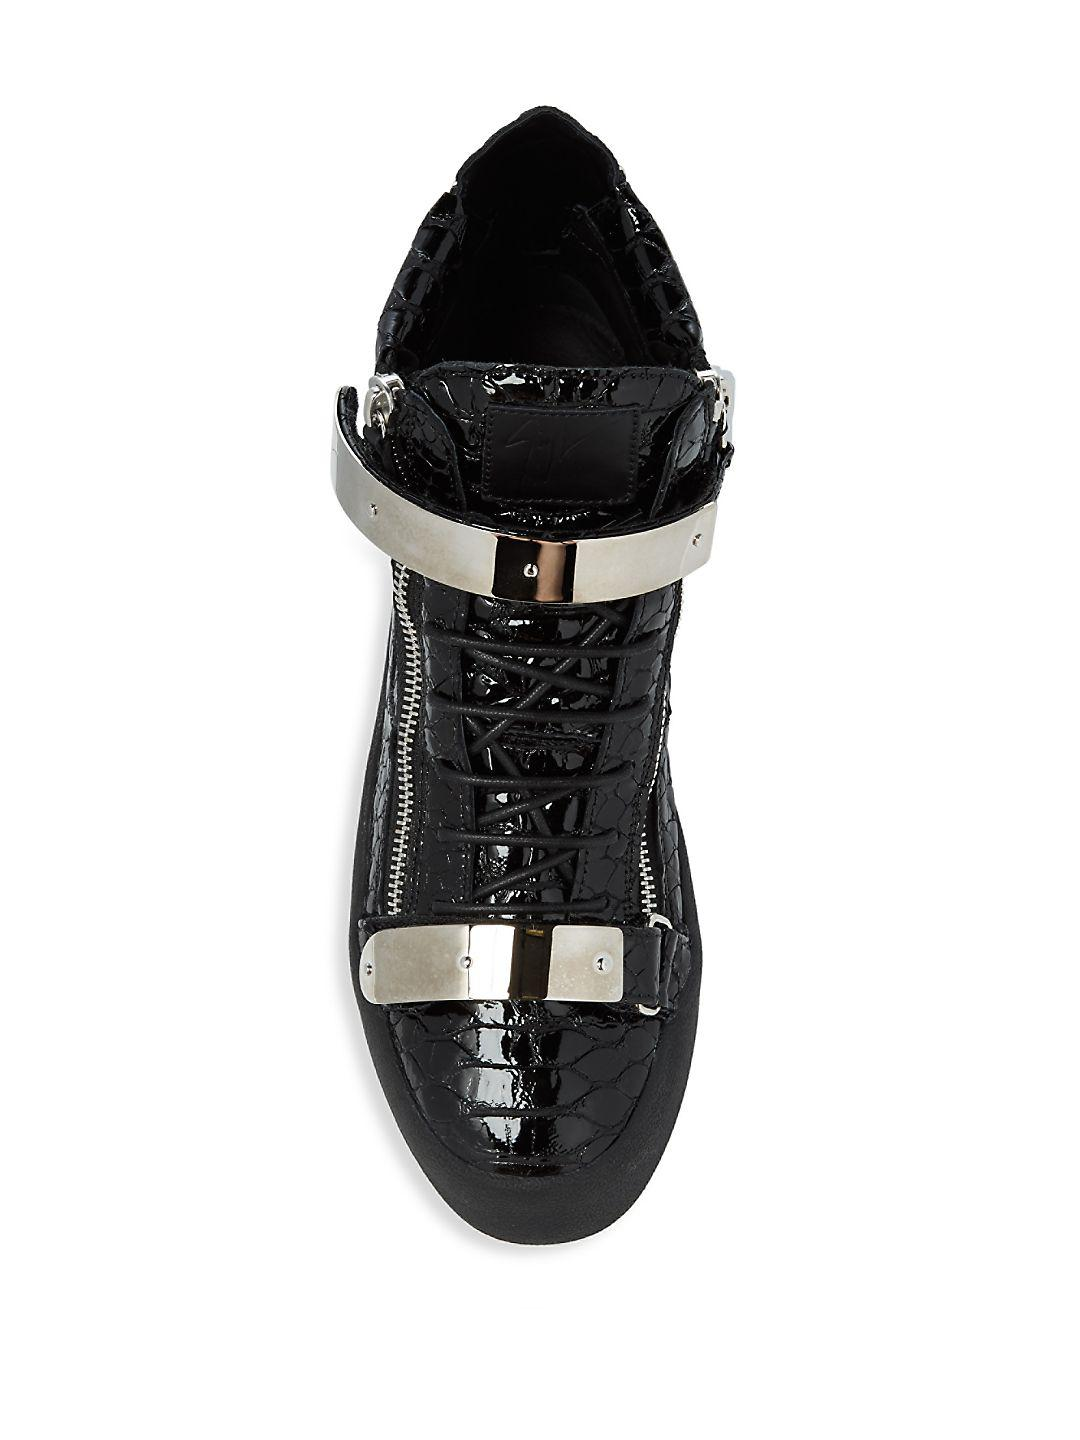 Giuseppe Zanotti Textured Leather Sneakers in Black